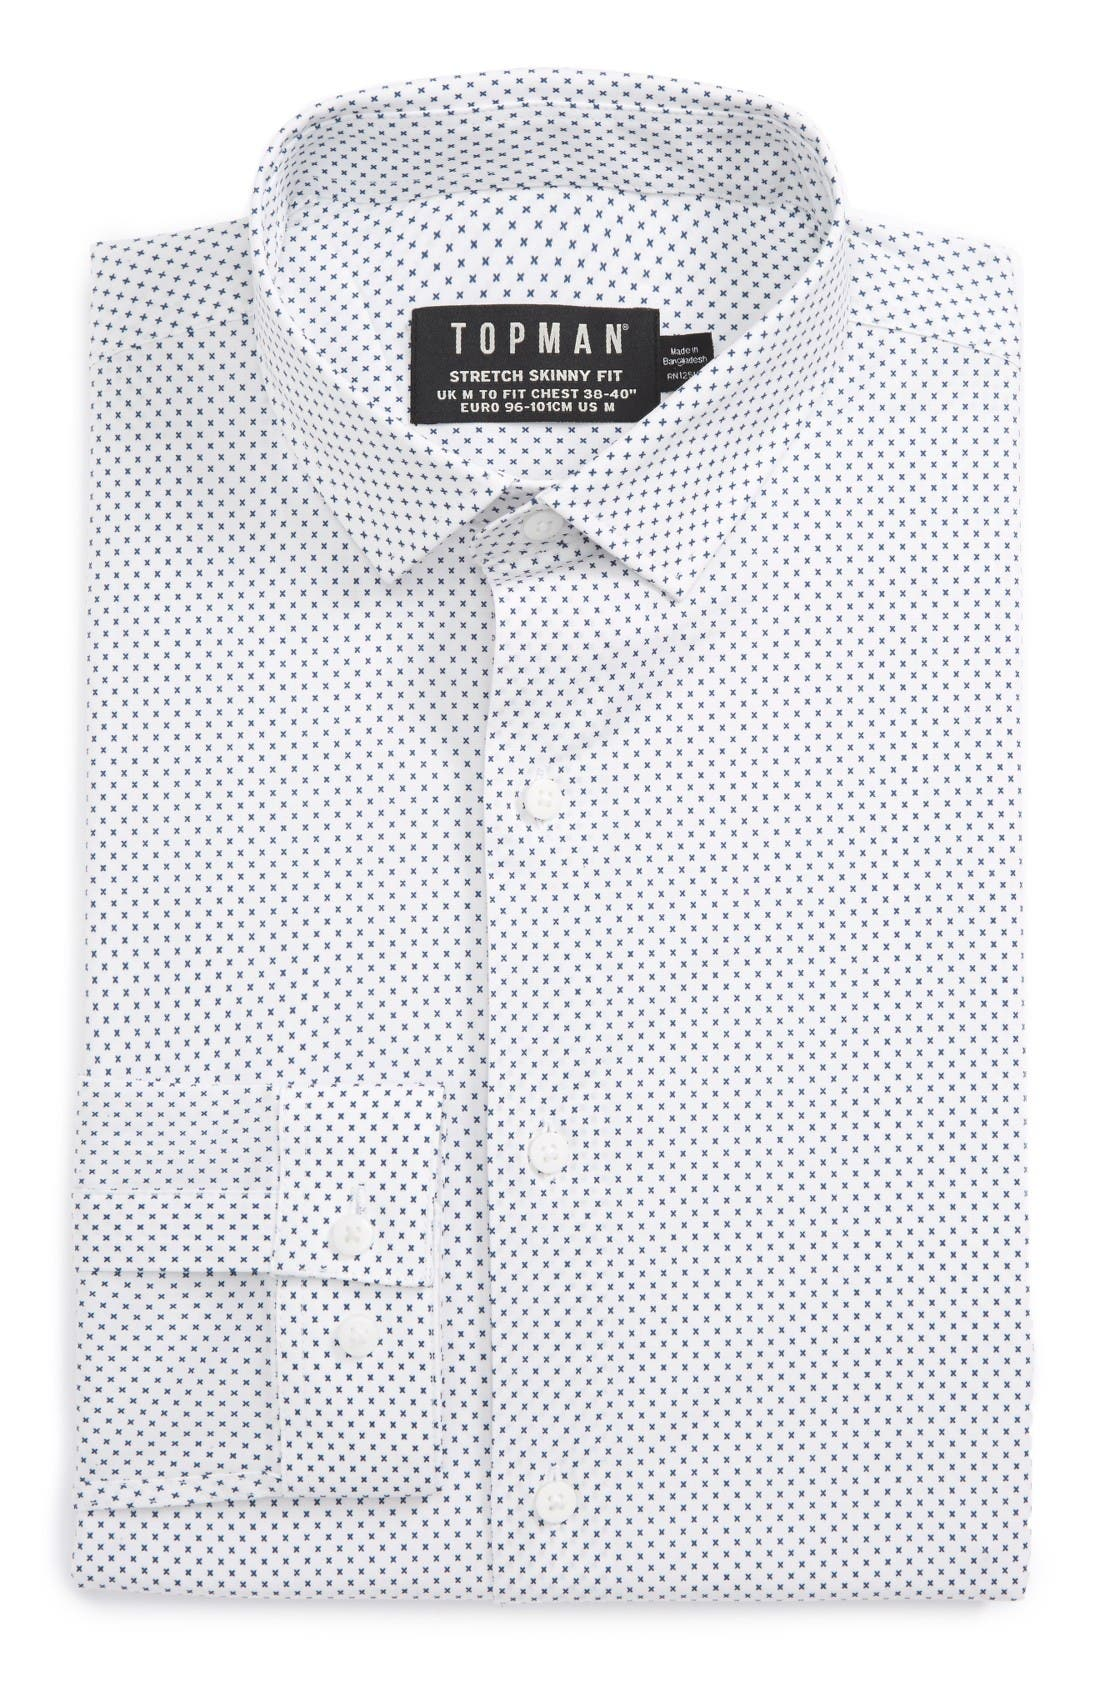 Topman Skinny Fit Dot Print Dress Shirt